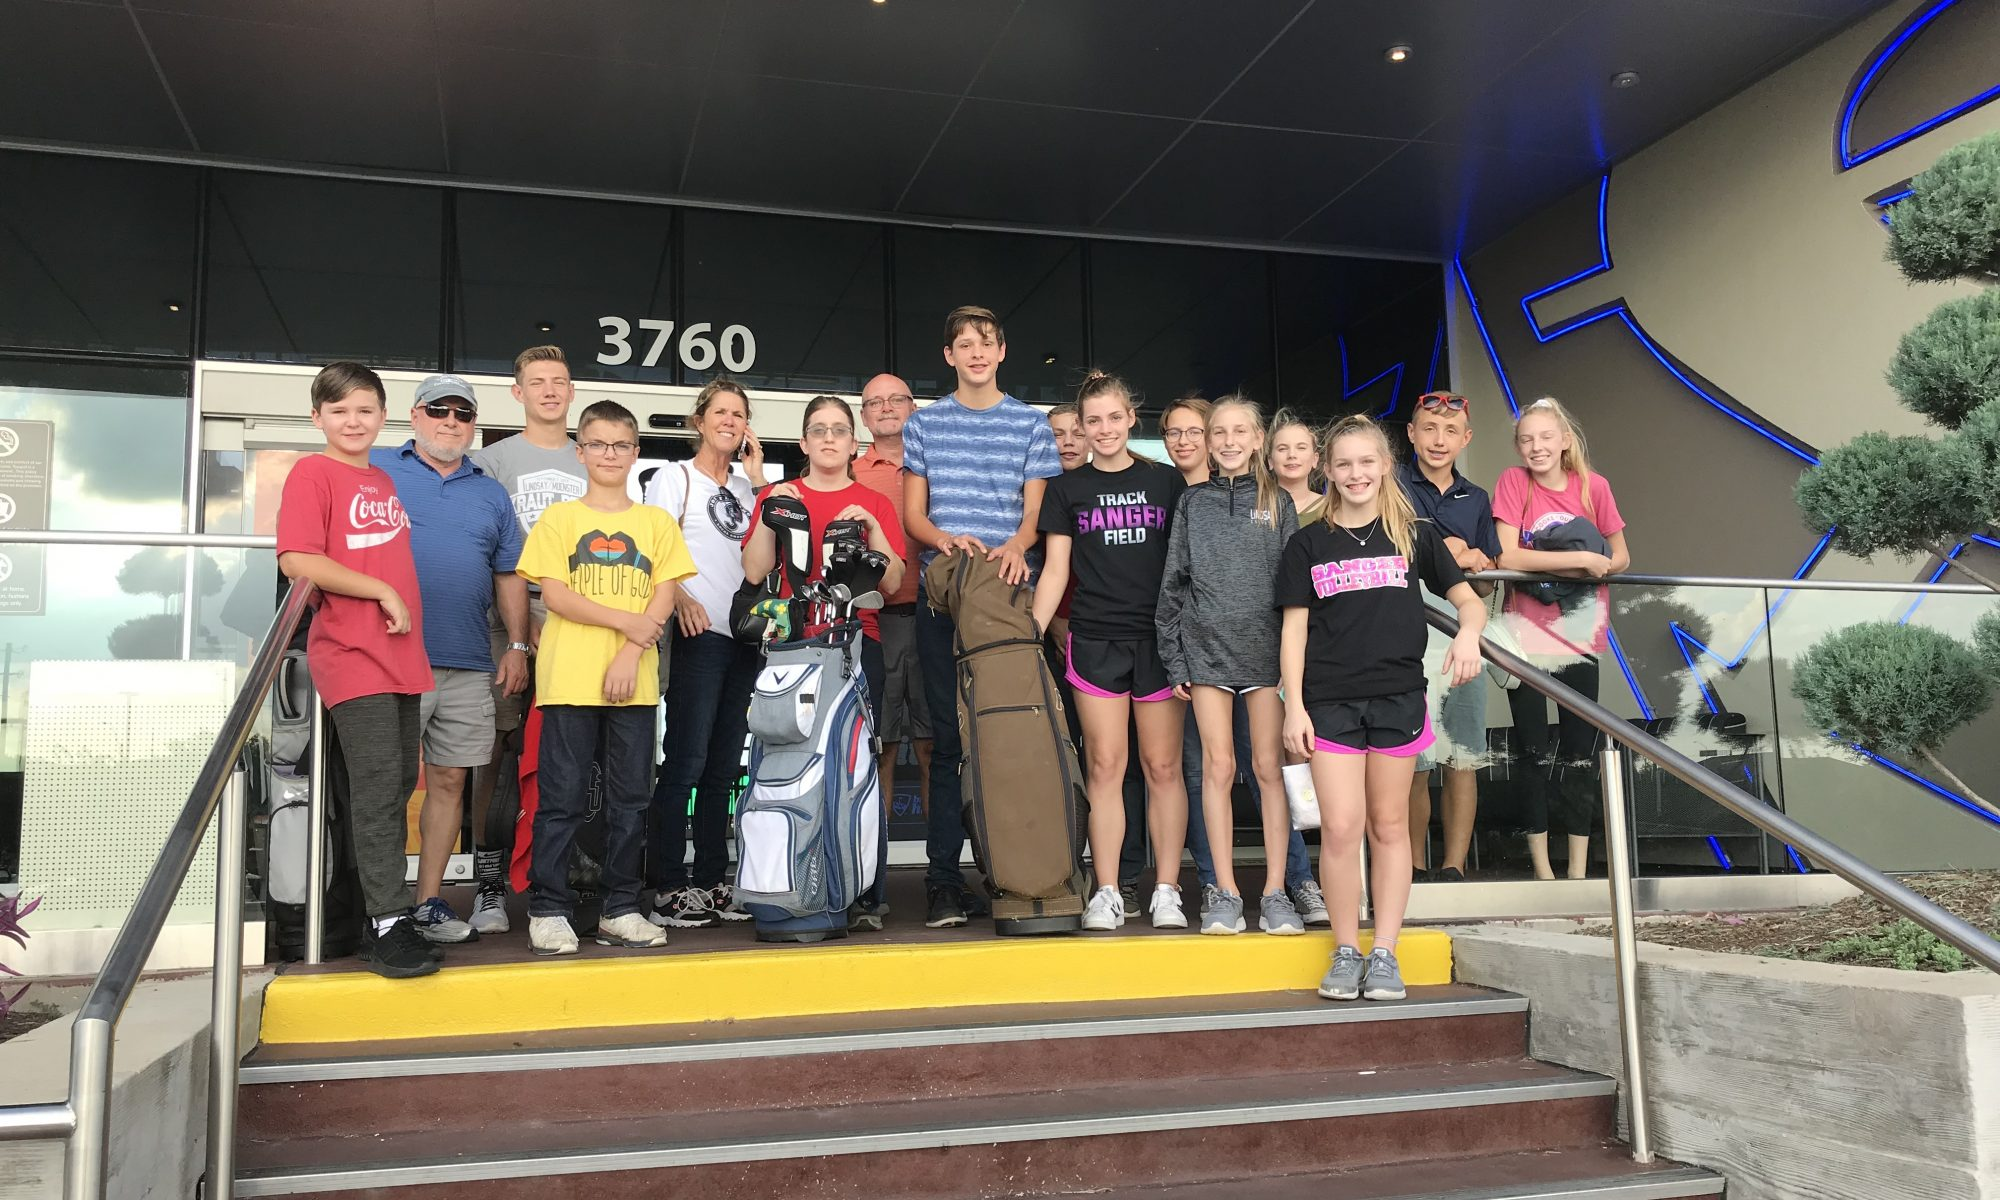 Youth group at top golf